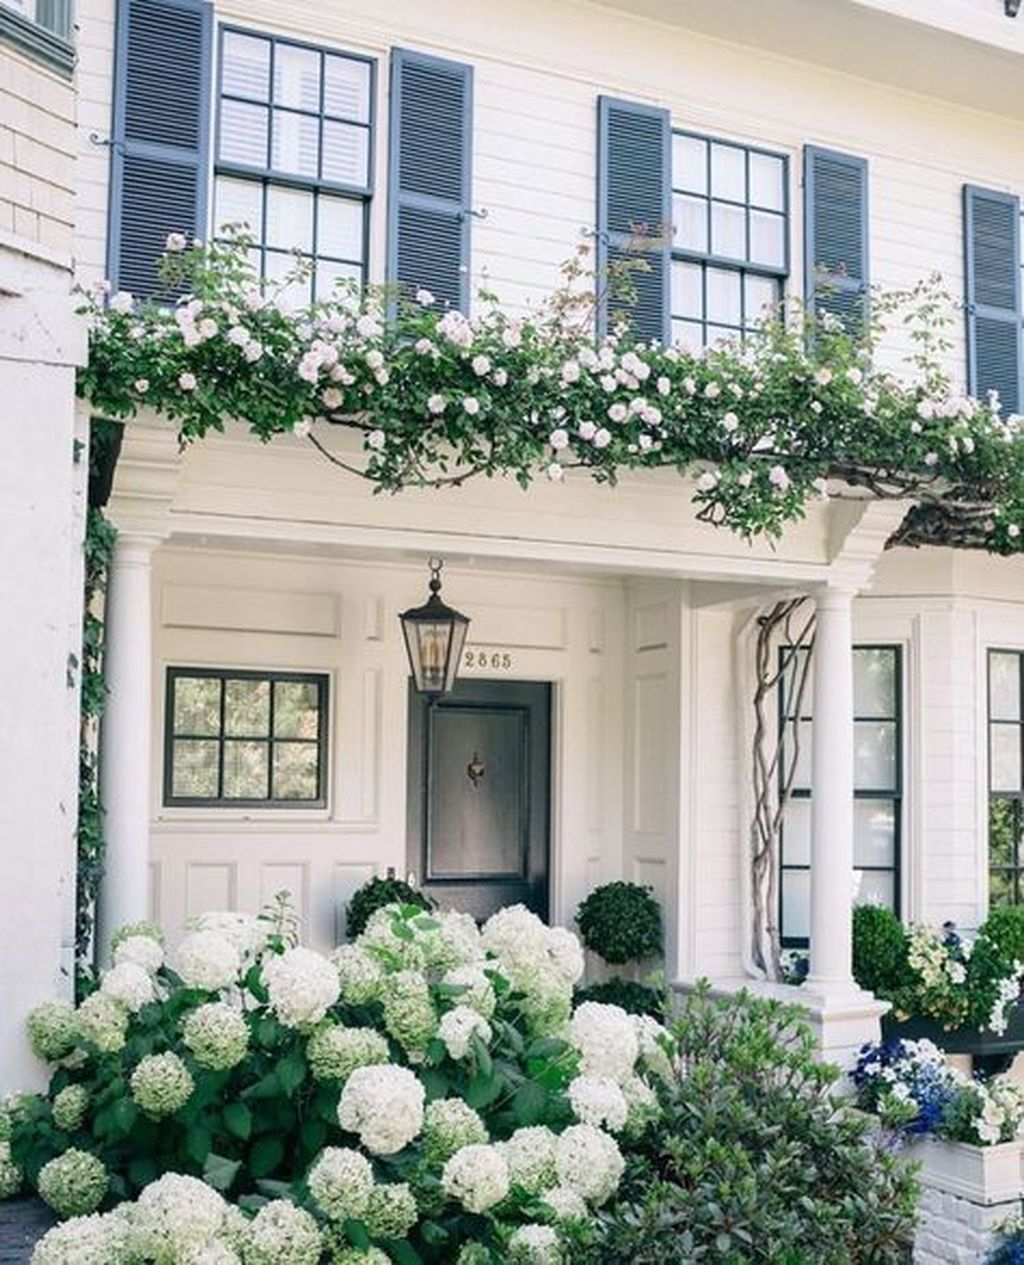 Fabulous Exterior Decoration Ideas With Flower In Window 29